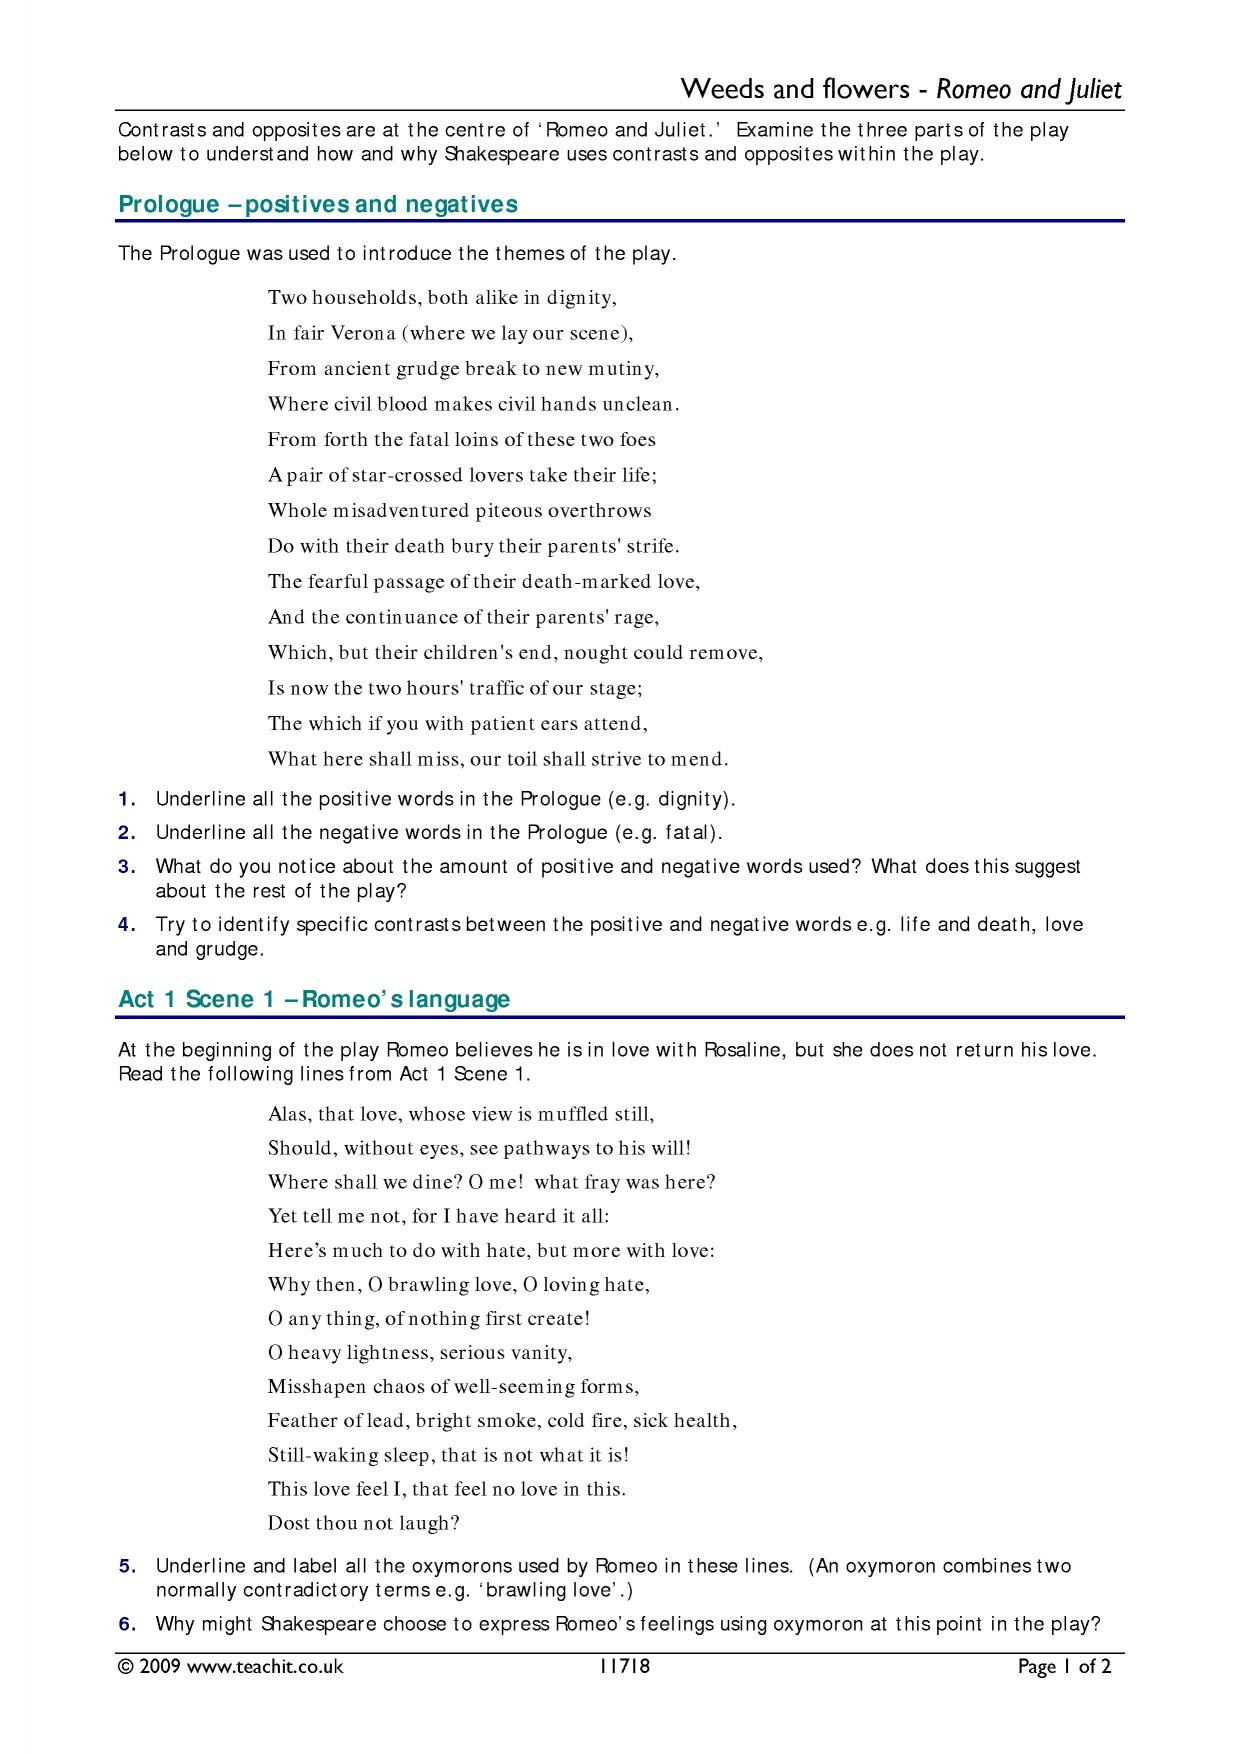 Romeo and juliet essays on fate moreover Romeo   juliet themes lesson also  together with KS4 Plays   Romeo and Juliet   Teachit English likewise KS4 Plays   Romeo and Juliet   Teachit English besides Romeo   Juliet  Themes KS3   Teach Shakespeare besides Standards Focus  Theme  Romeo and Juliet Lesson Plan for 8th   12th additionally Romeo   Juliet  Student Worksheet 1 Reading task 1  shakespeare for furthermore Romeo and Juliet Themes   GradeSaver in addition Themes in Romeo and Juliet Table Graphic Organiser Student in addition Romeo and Juliet  Act IV Reading and Study Guide Worksheet for 9th also  besides  together with A Time For Us   Theme from Romeo   Juliet    Print Sheet Music moreover Romeo And Juliet Theme Worksheet   Green  munities Canada furthermore Romeo and Juliet Prologue Worksheet Also Romeo and Juliet Worksheet. on romeo and juliet themes worksheet